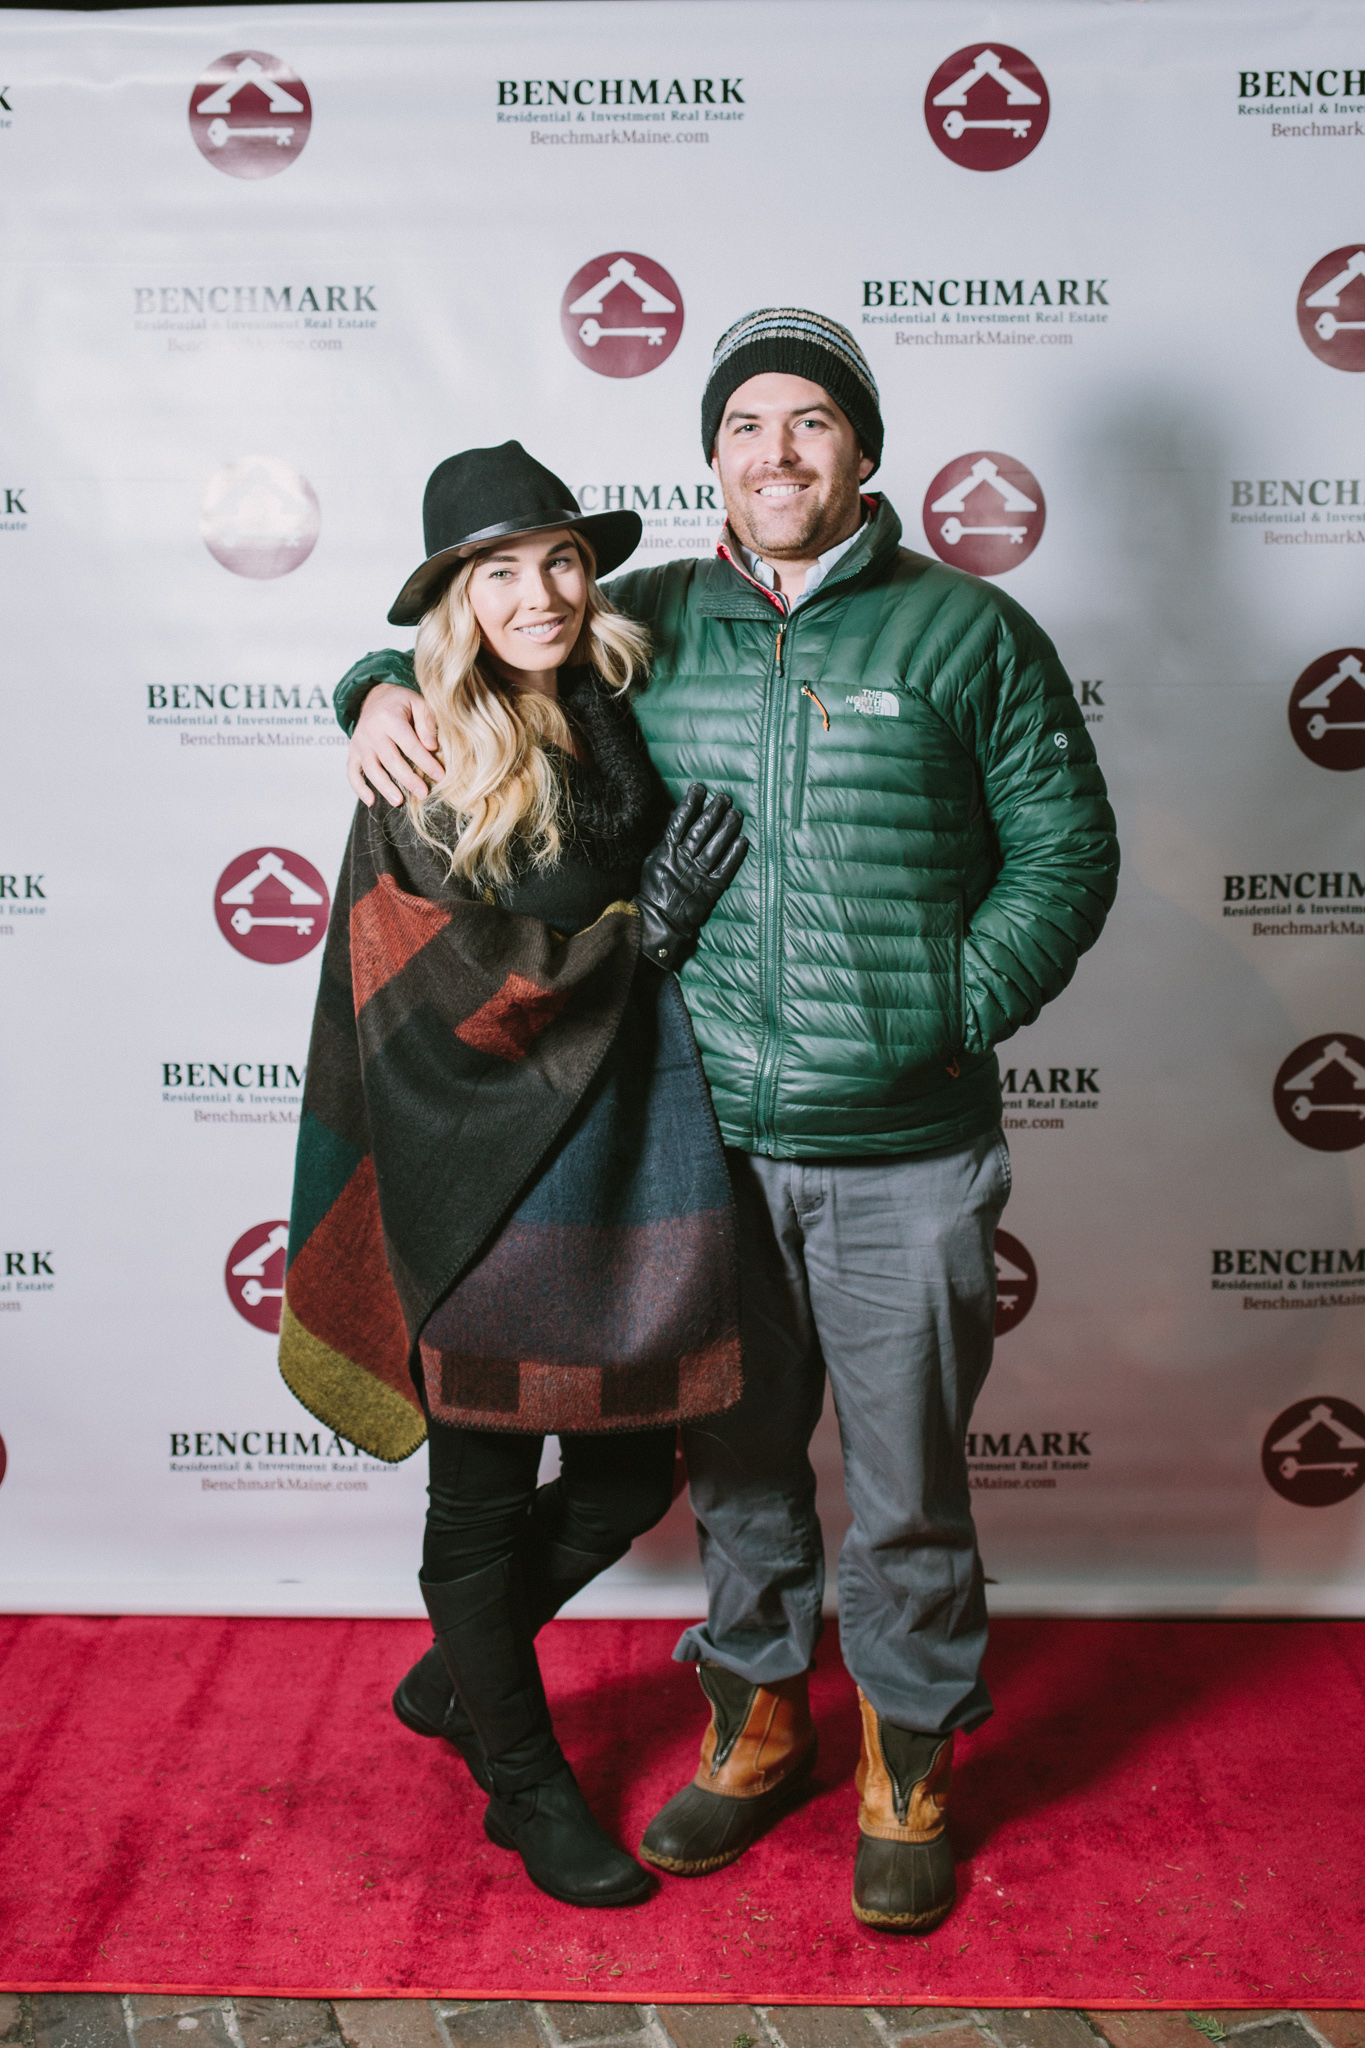 Benchmark_Holiday_Party_SR-018.jpg